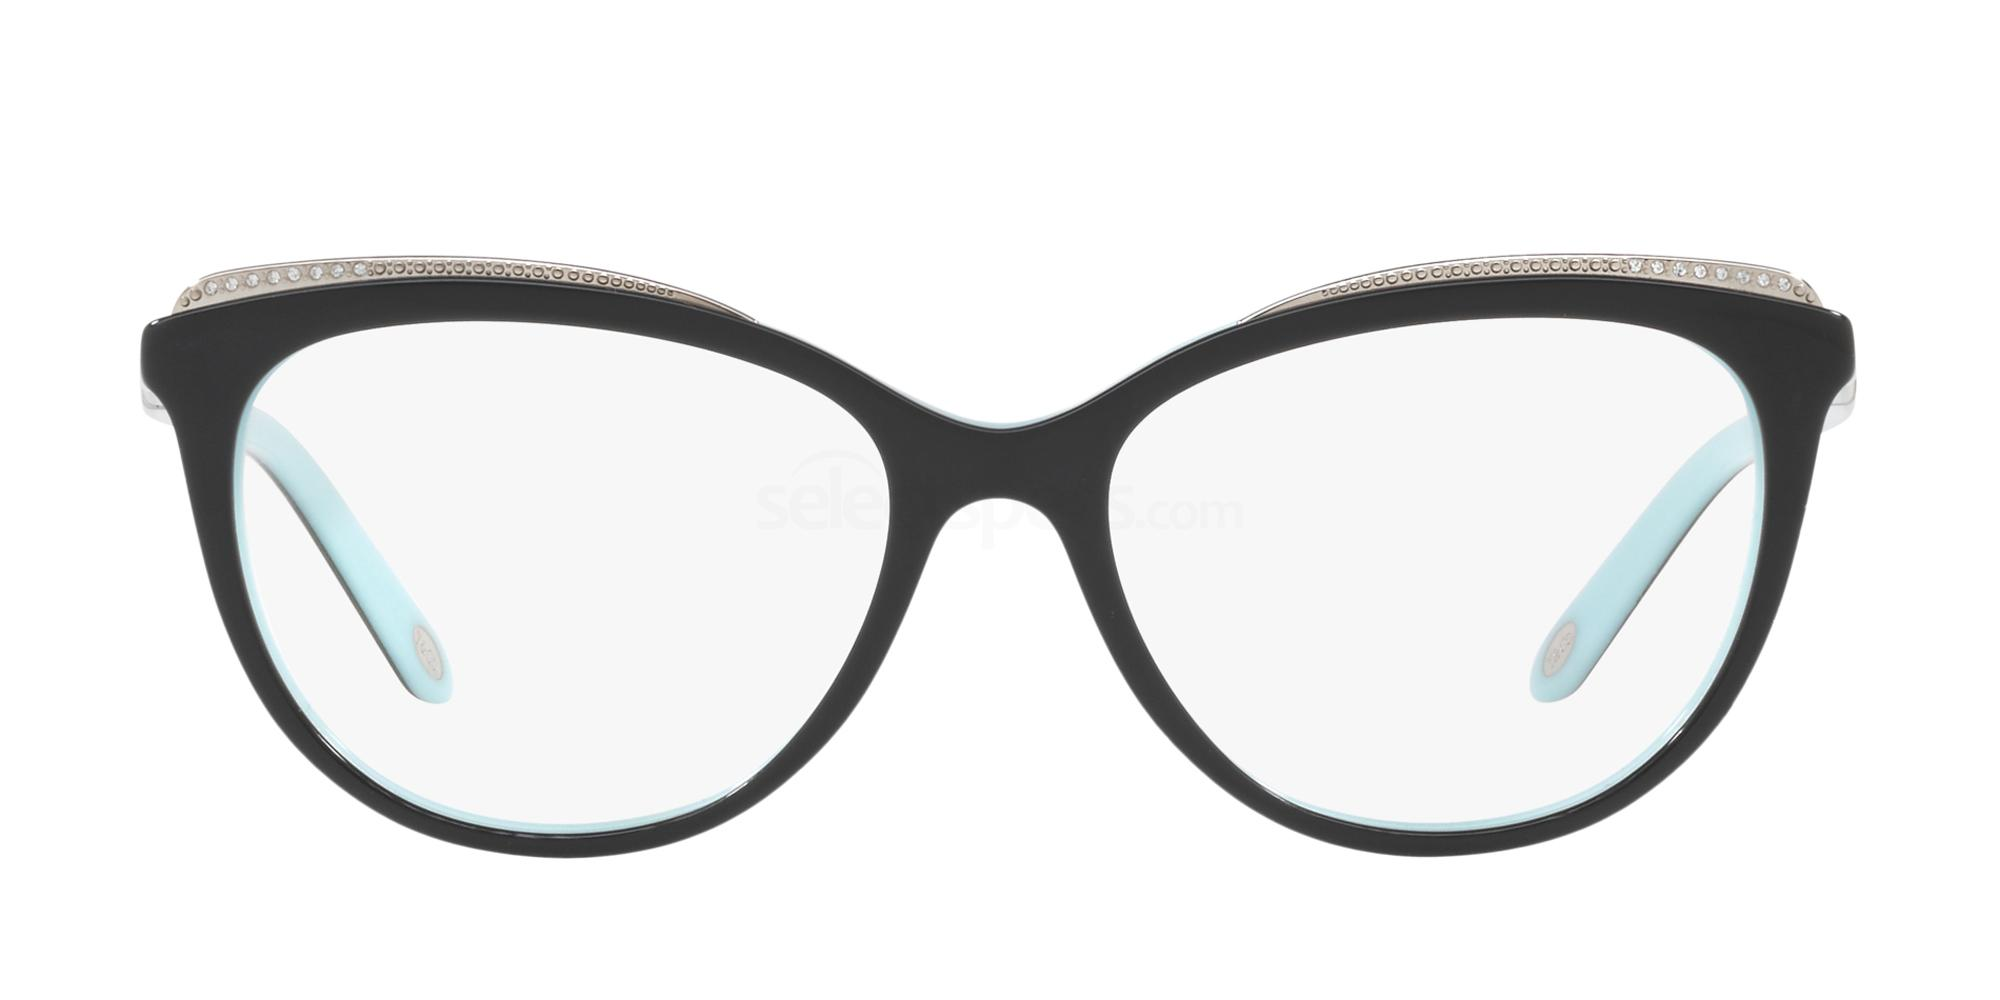 8055 TF2147B Glasses, Tiffany & Co.